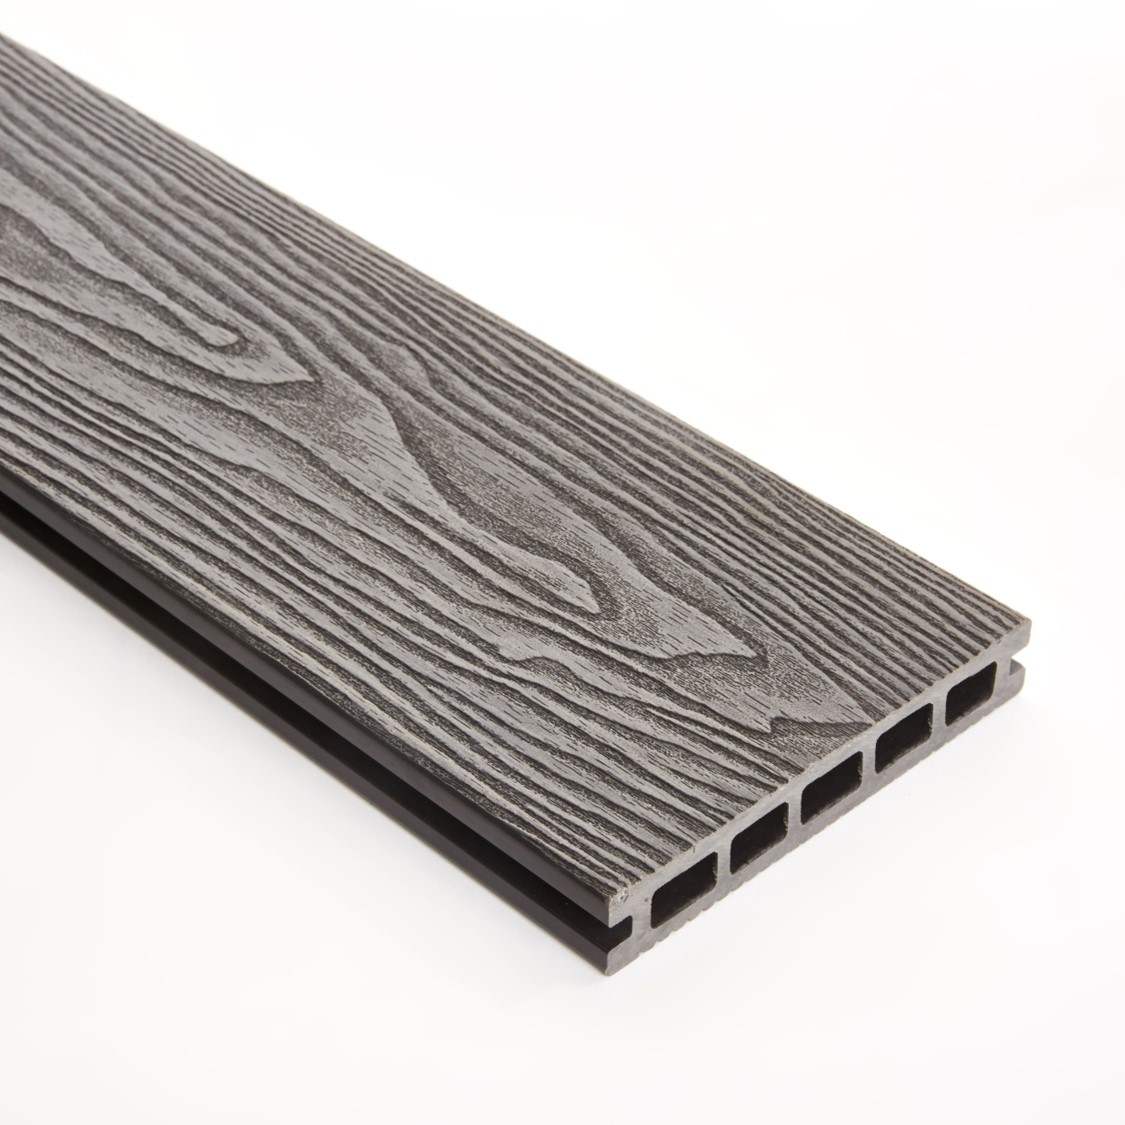 Wpc Double Faced Decking Grey Triton Storm Building Products